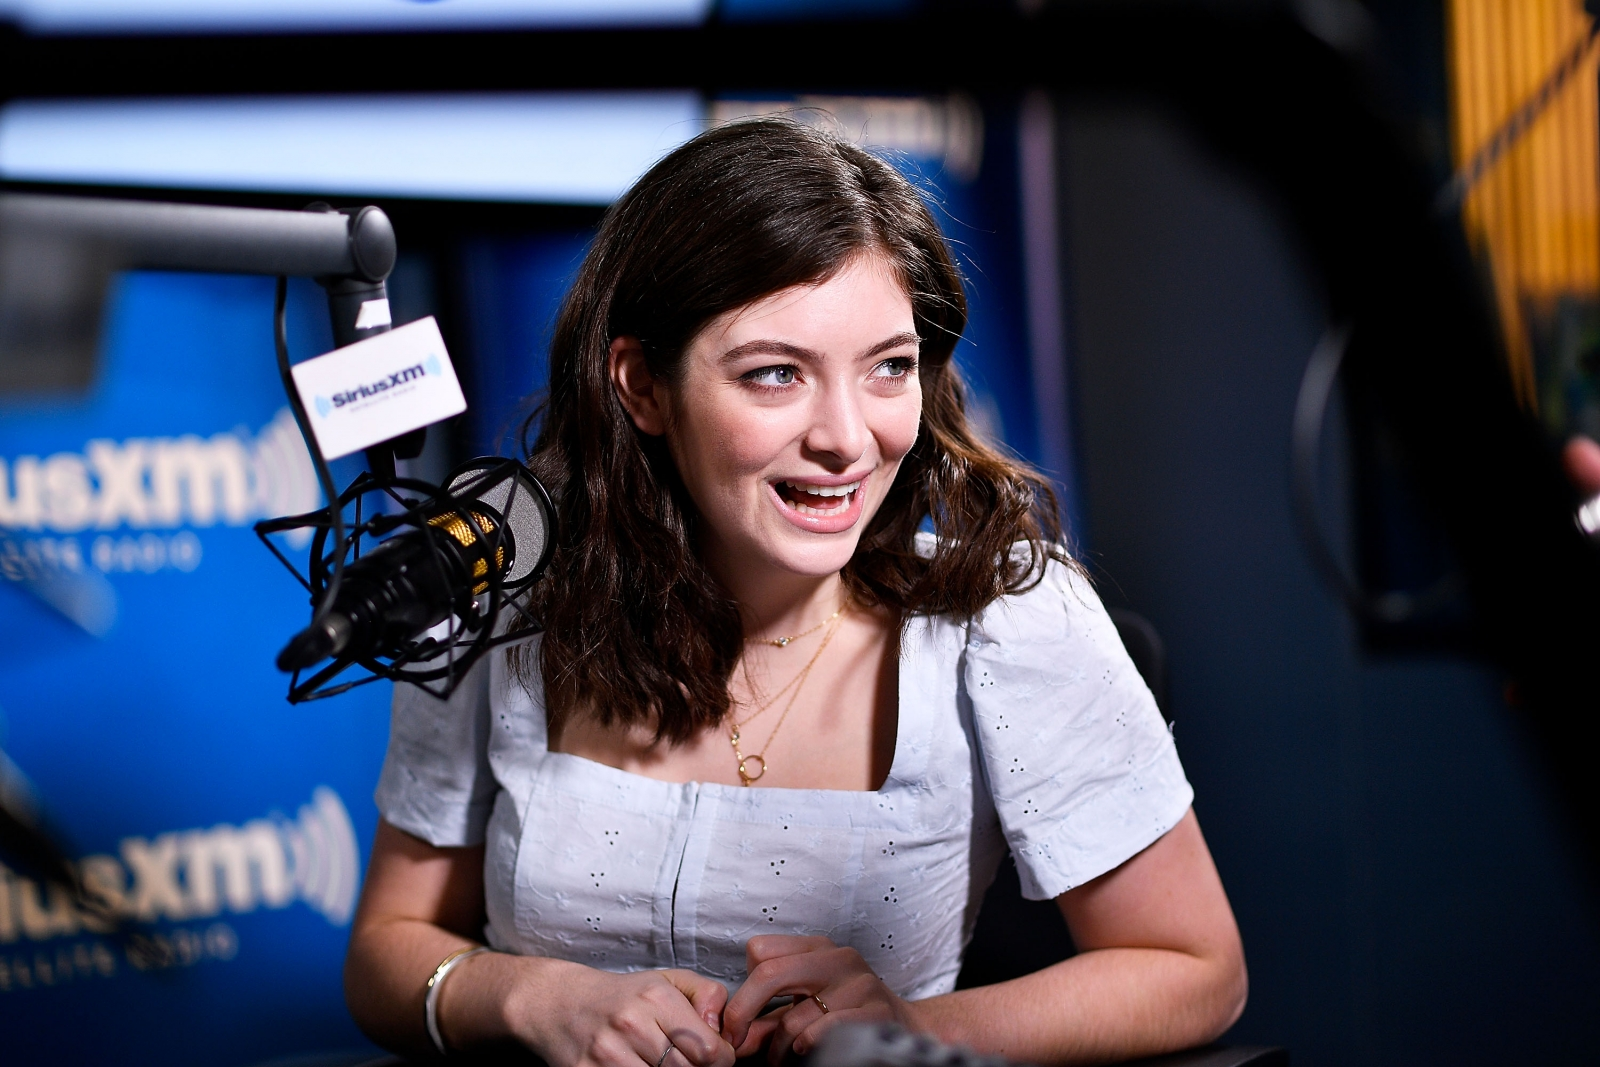 Lorde Hits It Off with Smoothie Cashier, Invites Her to Governors Ball